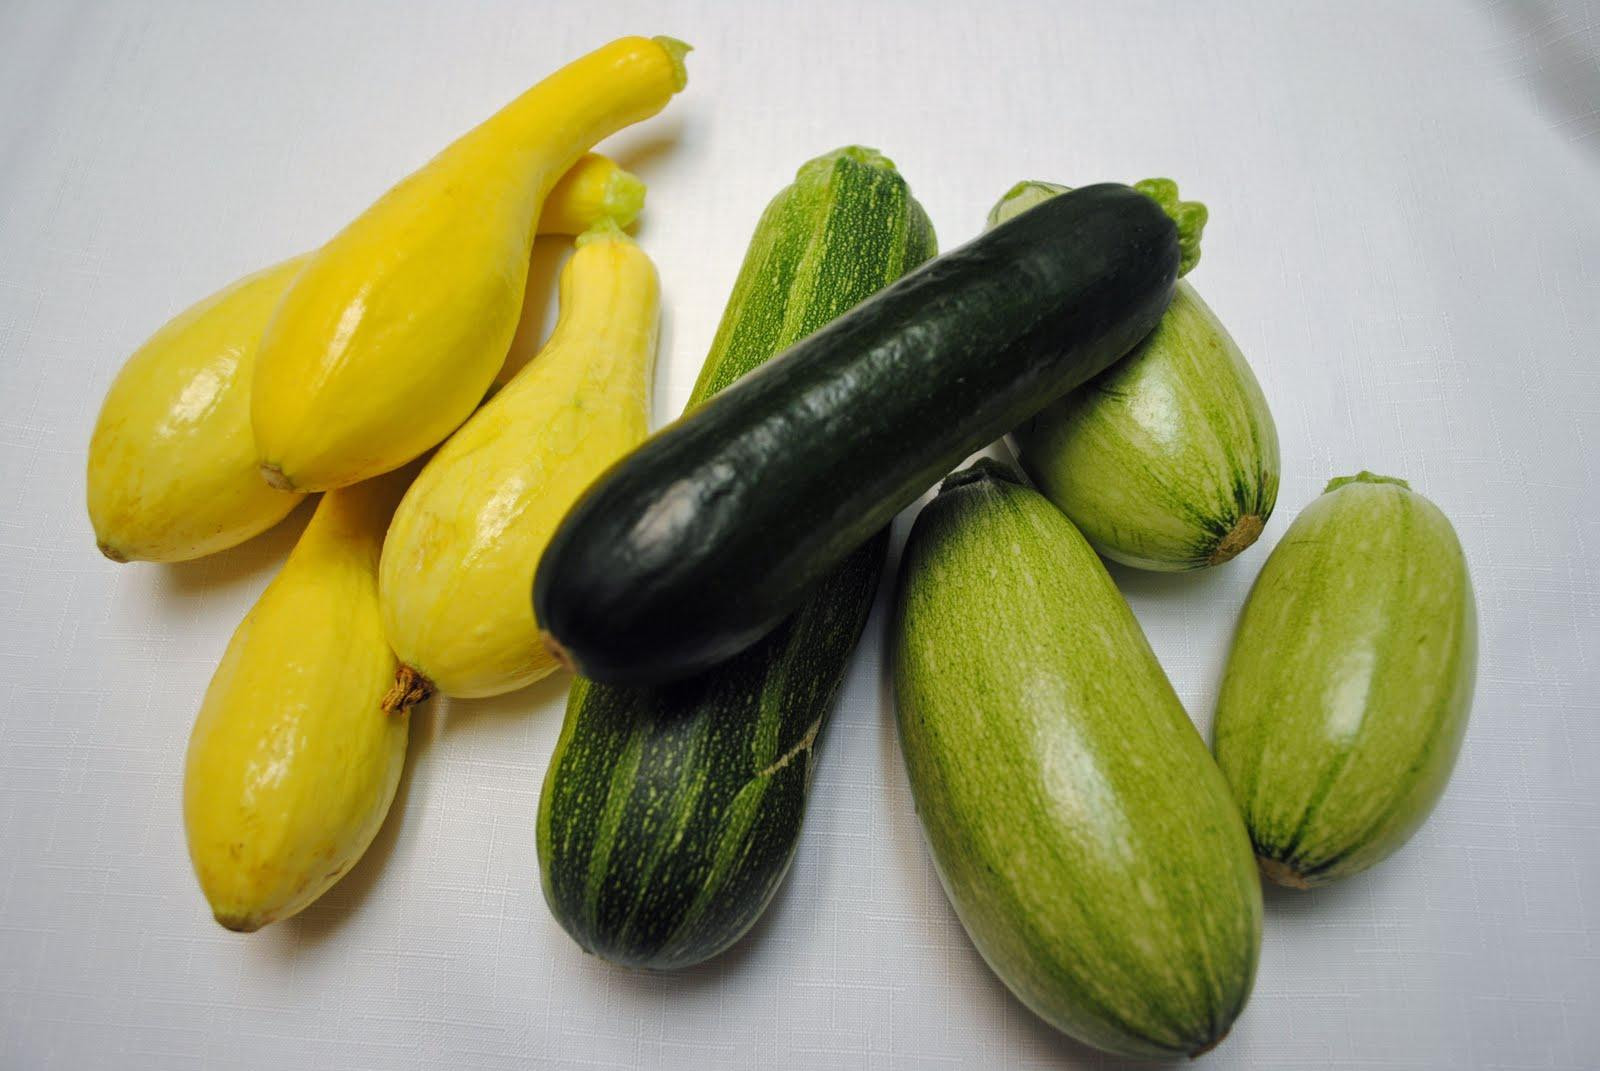 Summer Squash Varieties  Produce Information Organized by Plant Part